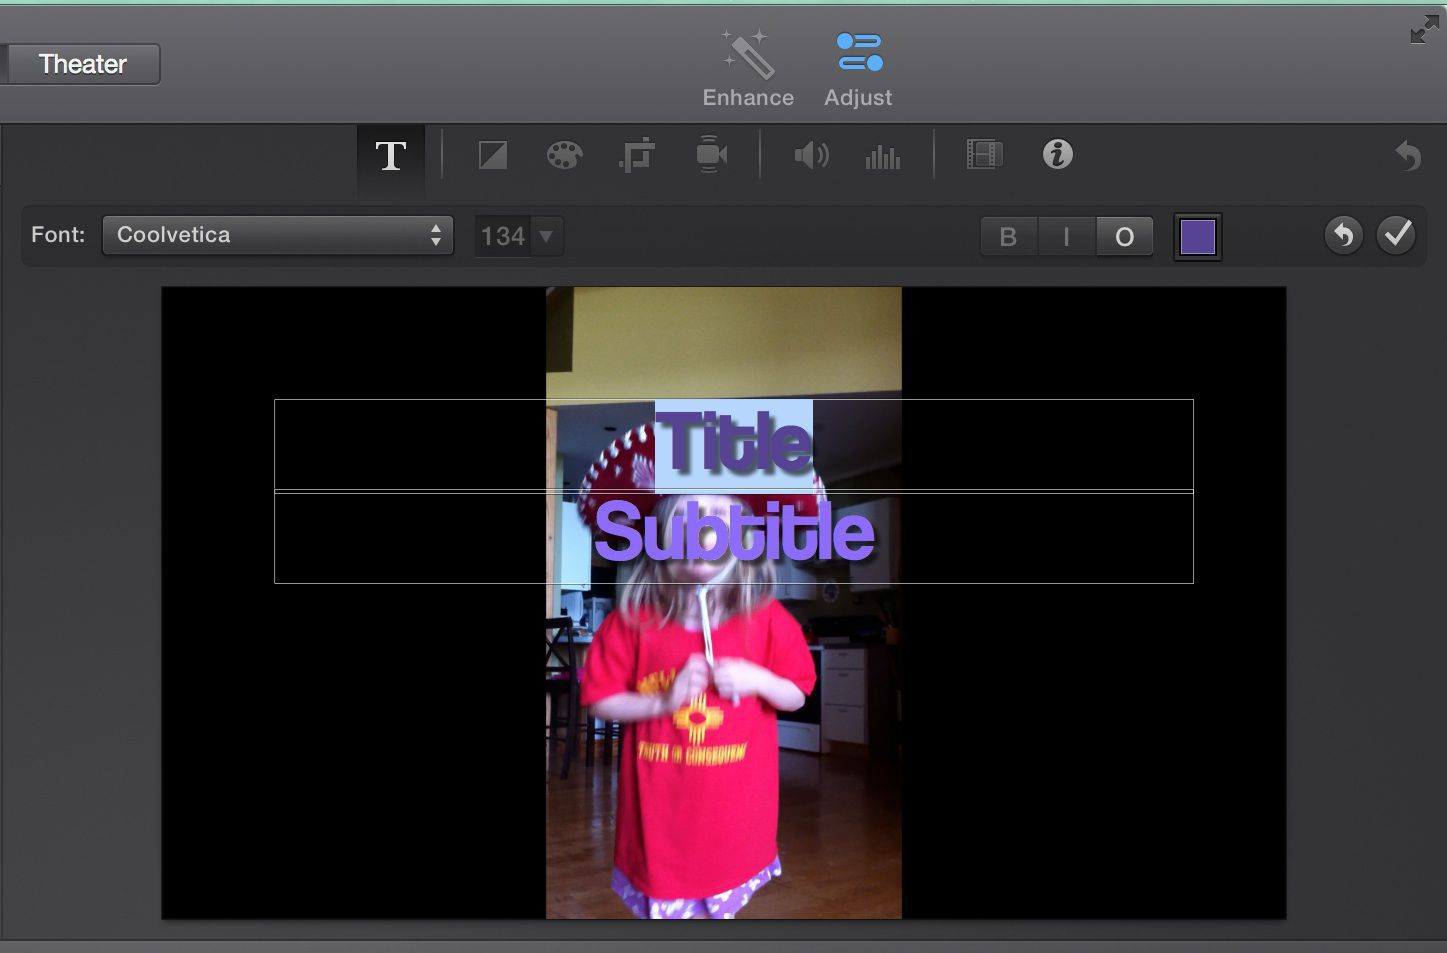 Editing titles in iMovie